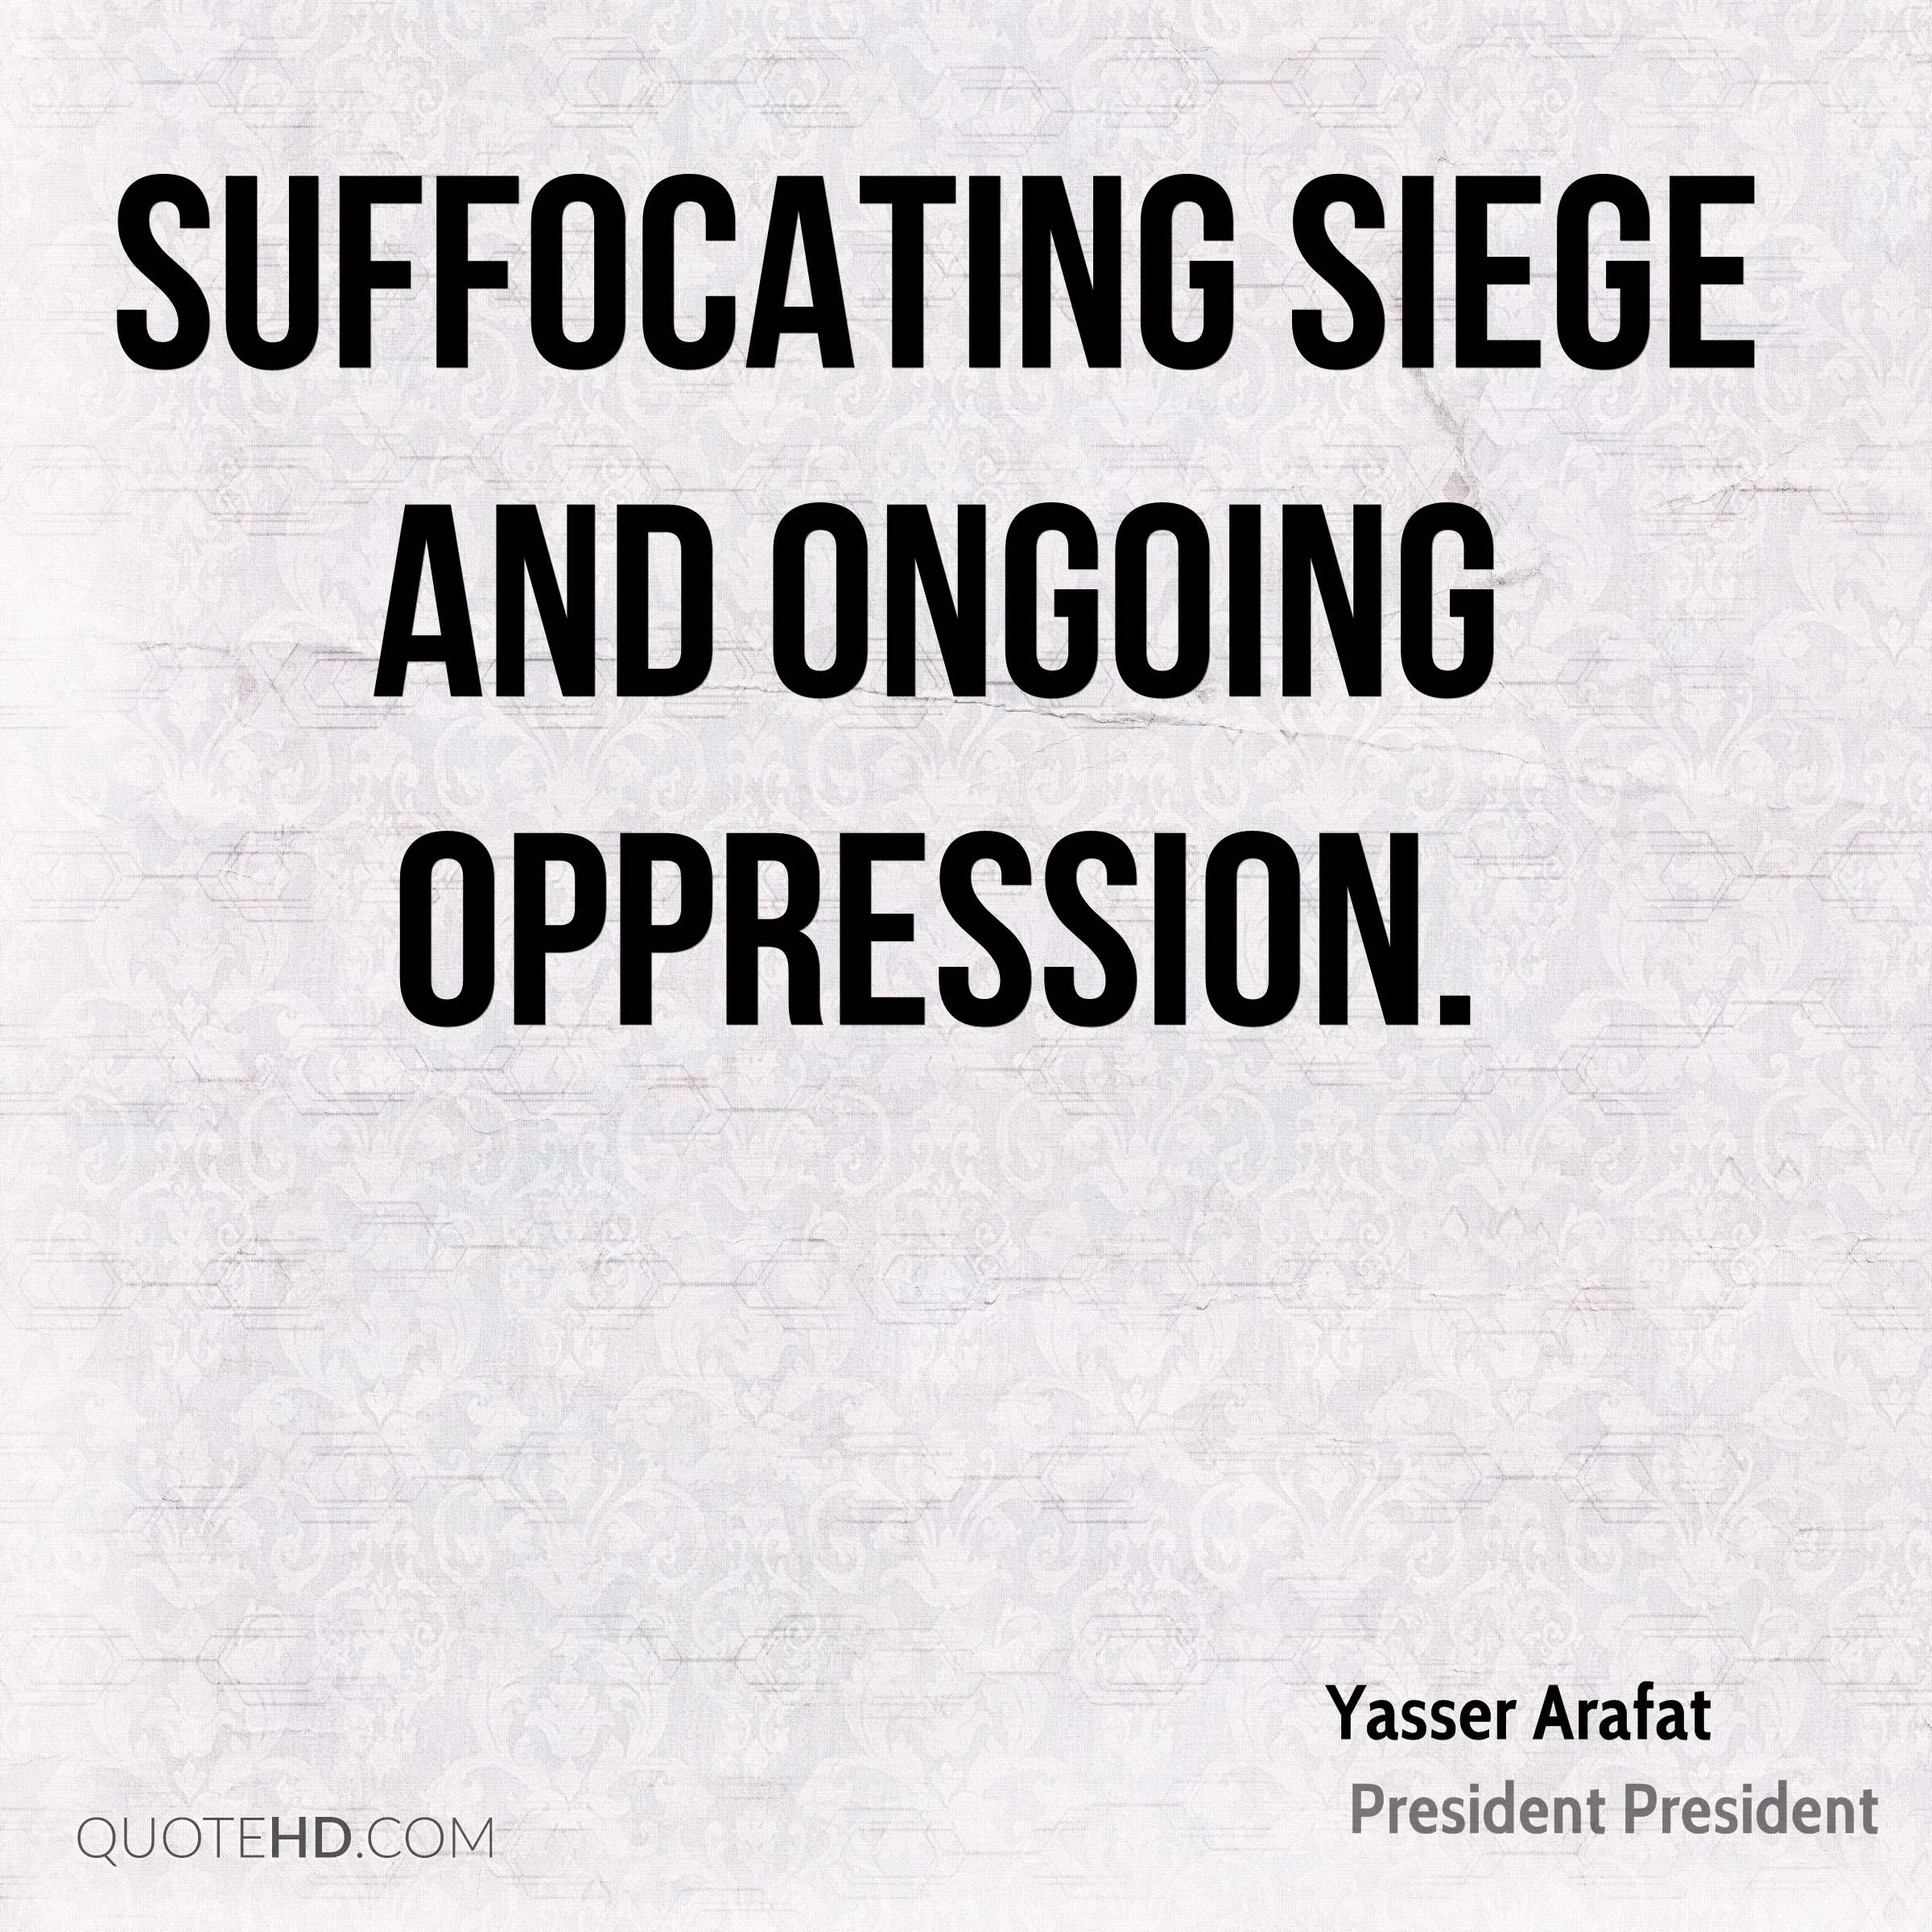 suffocating siege and ongoing oppression.